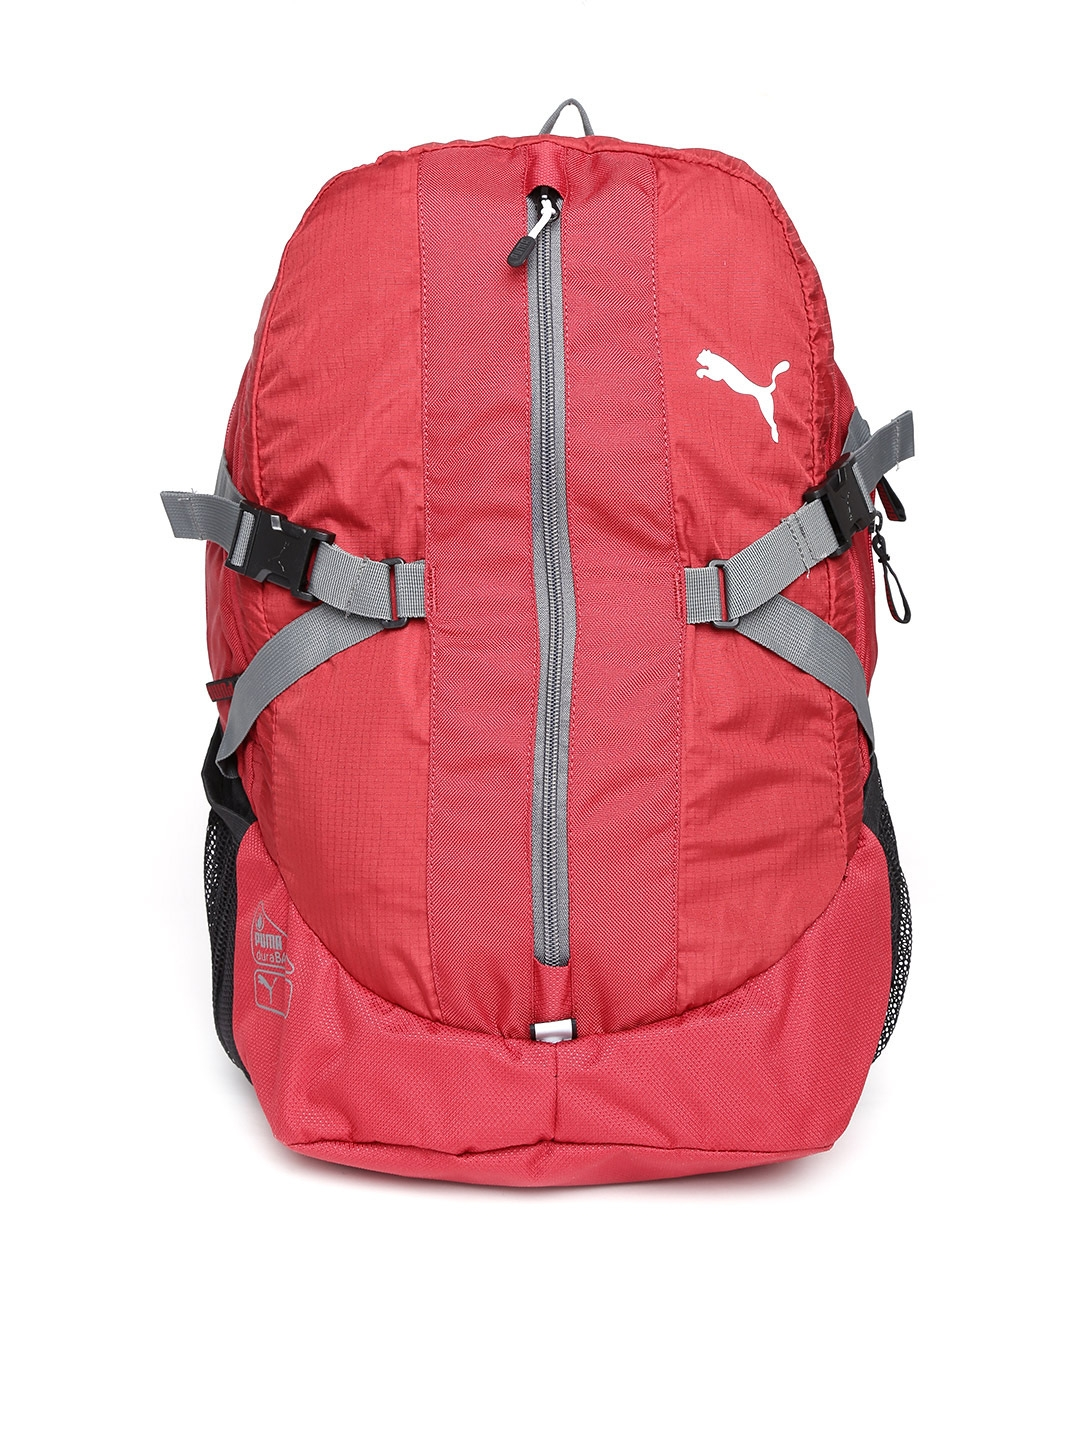 ad79248717d4 Buy Puma Unisex Red Apex Laptop Backpack - Backpacks for Unisex 1497348